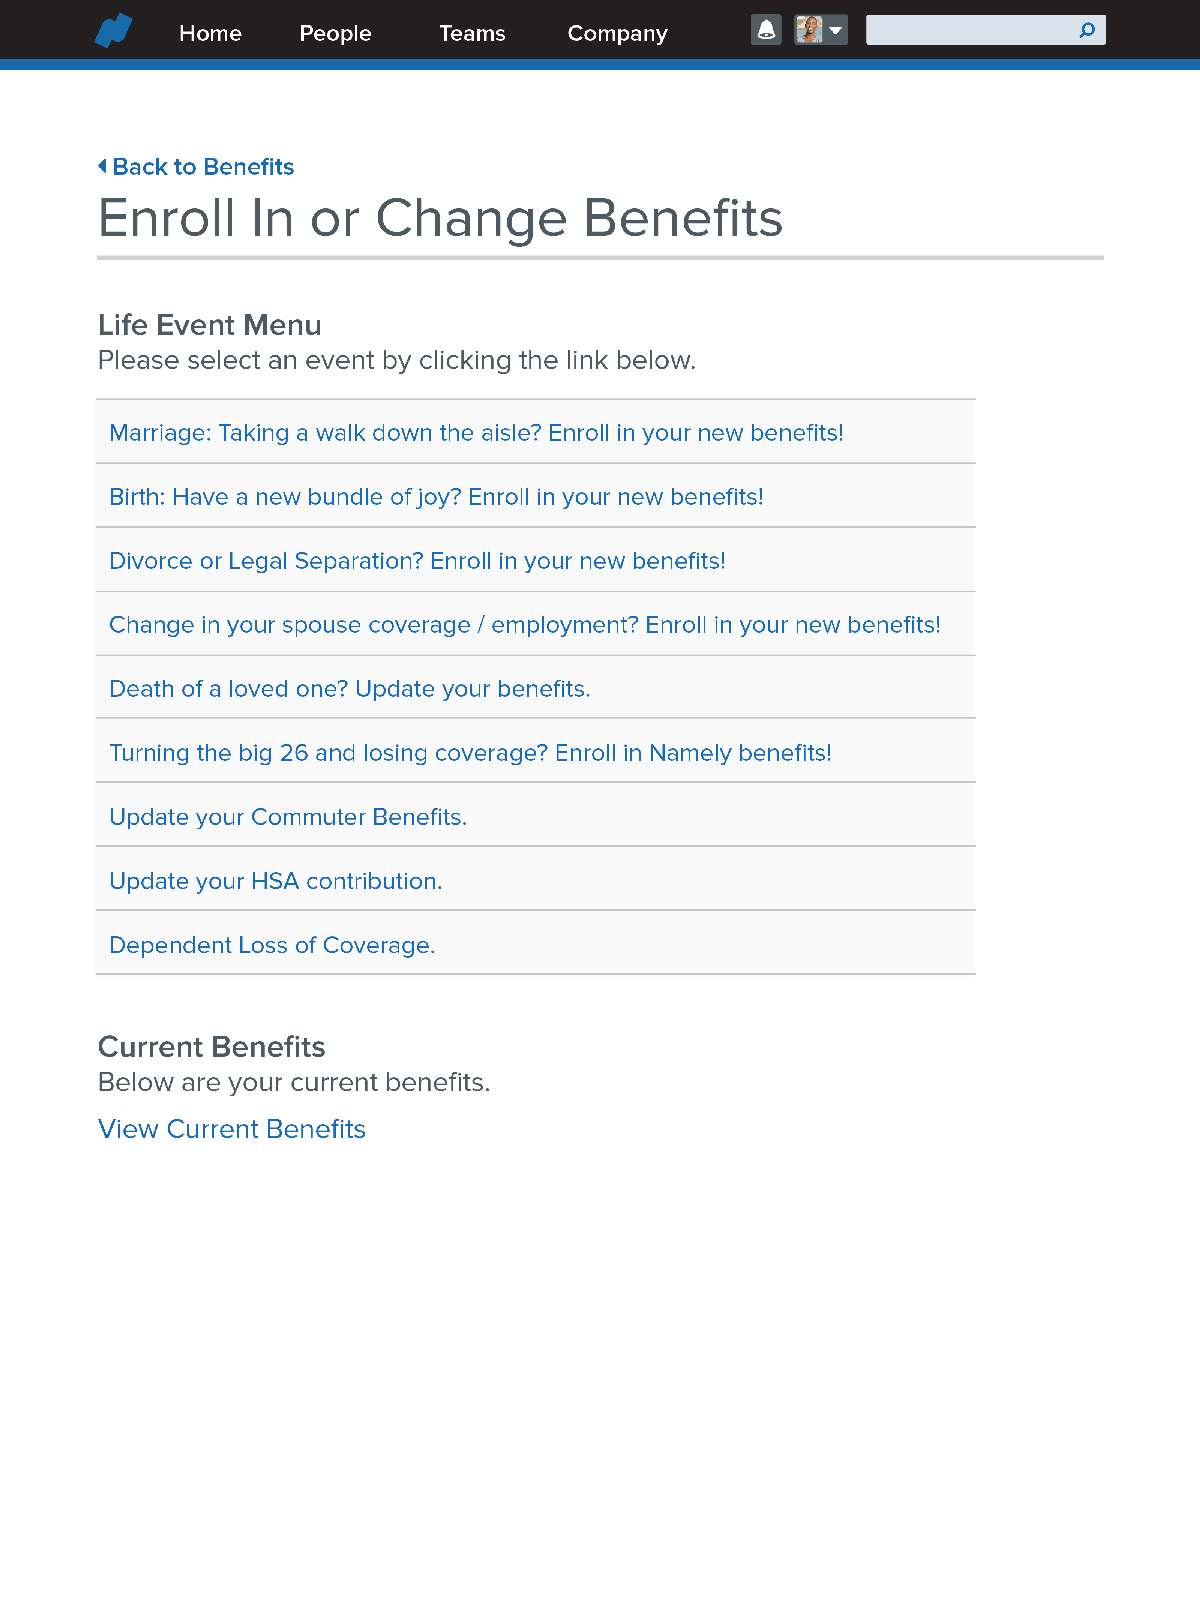 1.3 Benefits Carousel 03 LifeEvents